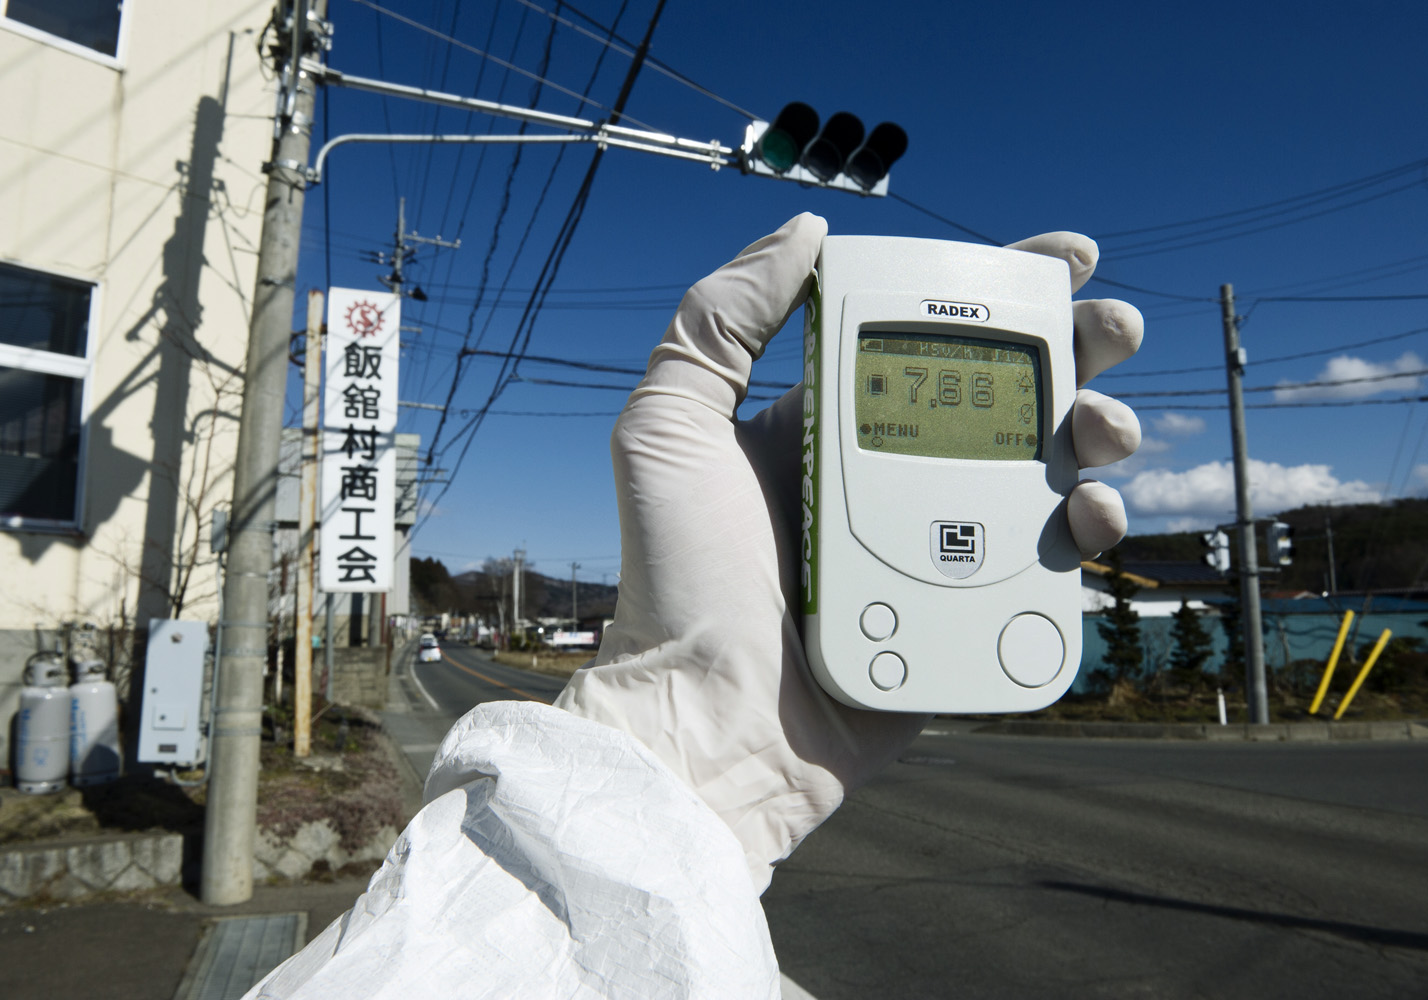 Iitate, Fukushima Prefecture  Japan, 27 March 2011  Greenpeace monitoring radiation levels far above legal limits. The geiger counter showing 7.66 micro Sievert per hour, and within 6 days people would receive a yearly dose of radioactivity. Iitate is located more then 40 km from Fukushima Nuclear Power Station and the village has still not been evacuated.